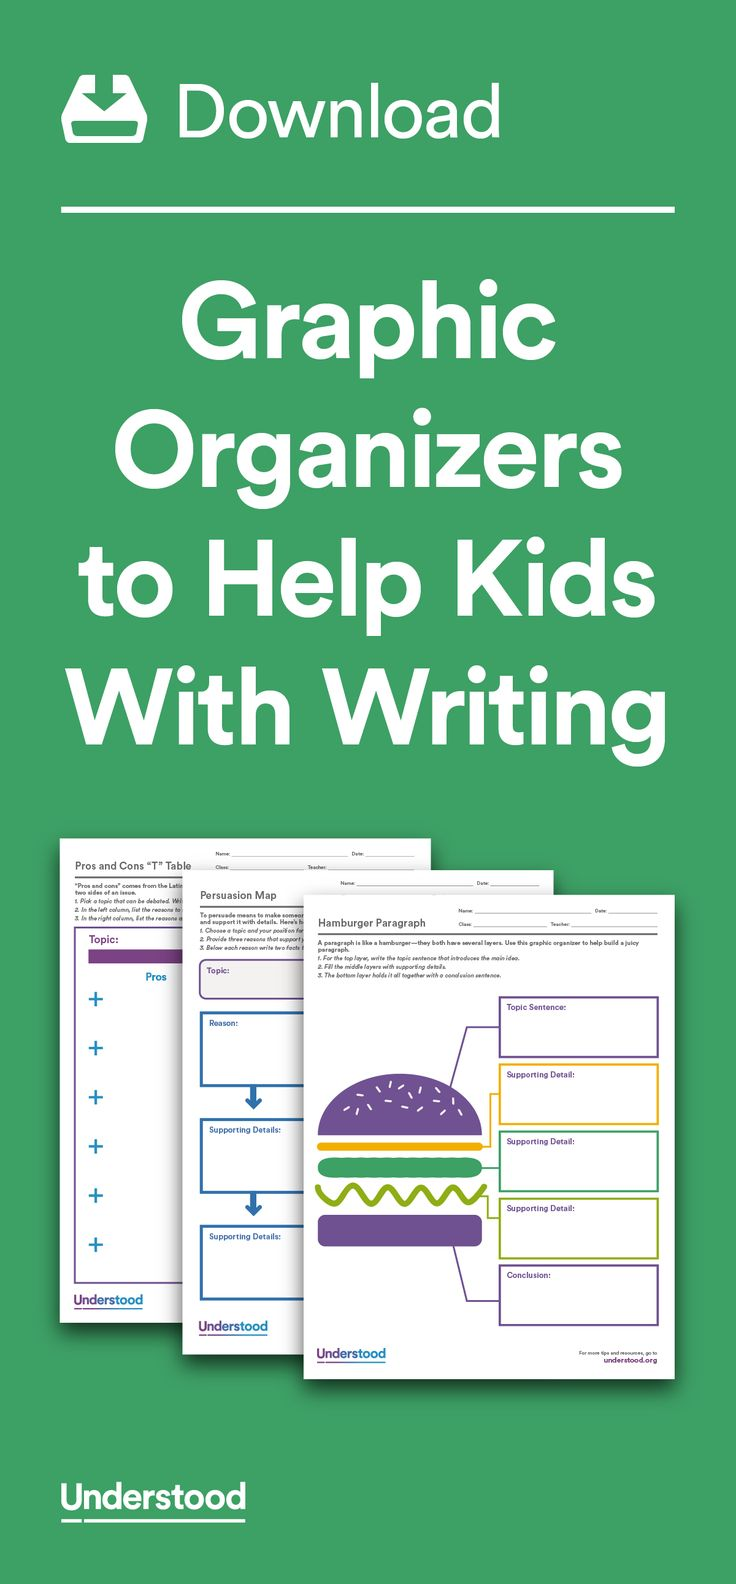 Graphic organizers are simple yet powerful tools that can help kids with dysgraphia, executive functioning and other issues that can cause trouble writing. A graphic organizer not only helps break an assignment into smaller steps. It also can help kids organize their thoughts in a very visual way.